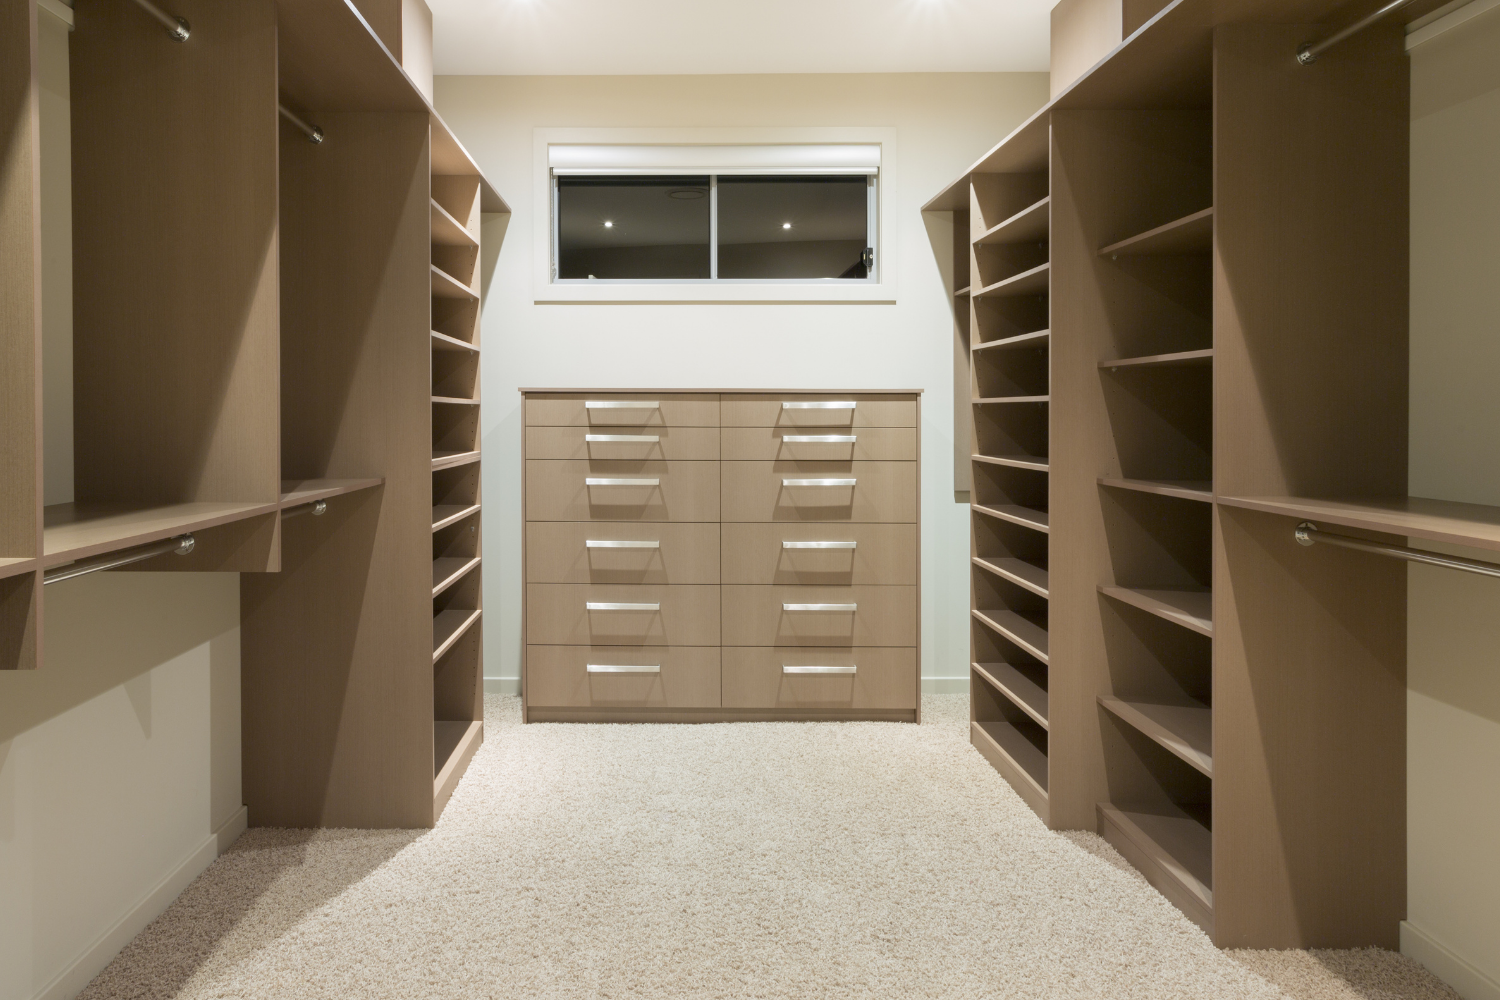 An image of a walk in closet used to demonstrate how much a custom closet costs.